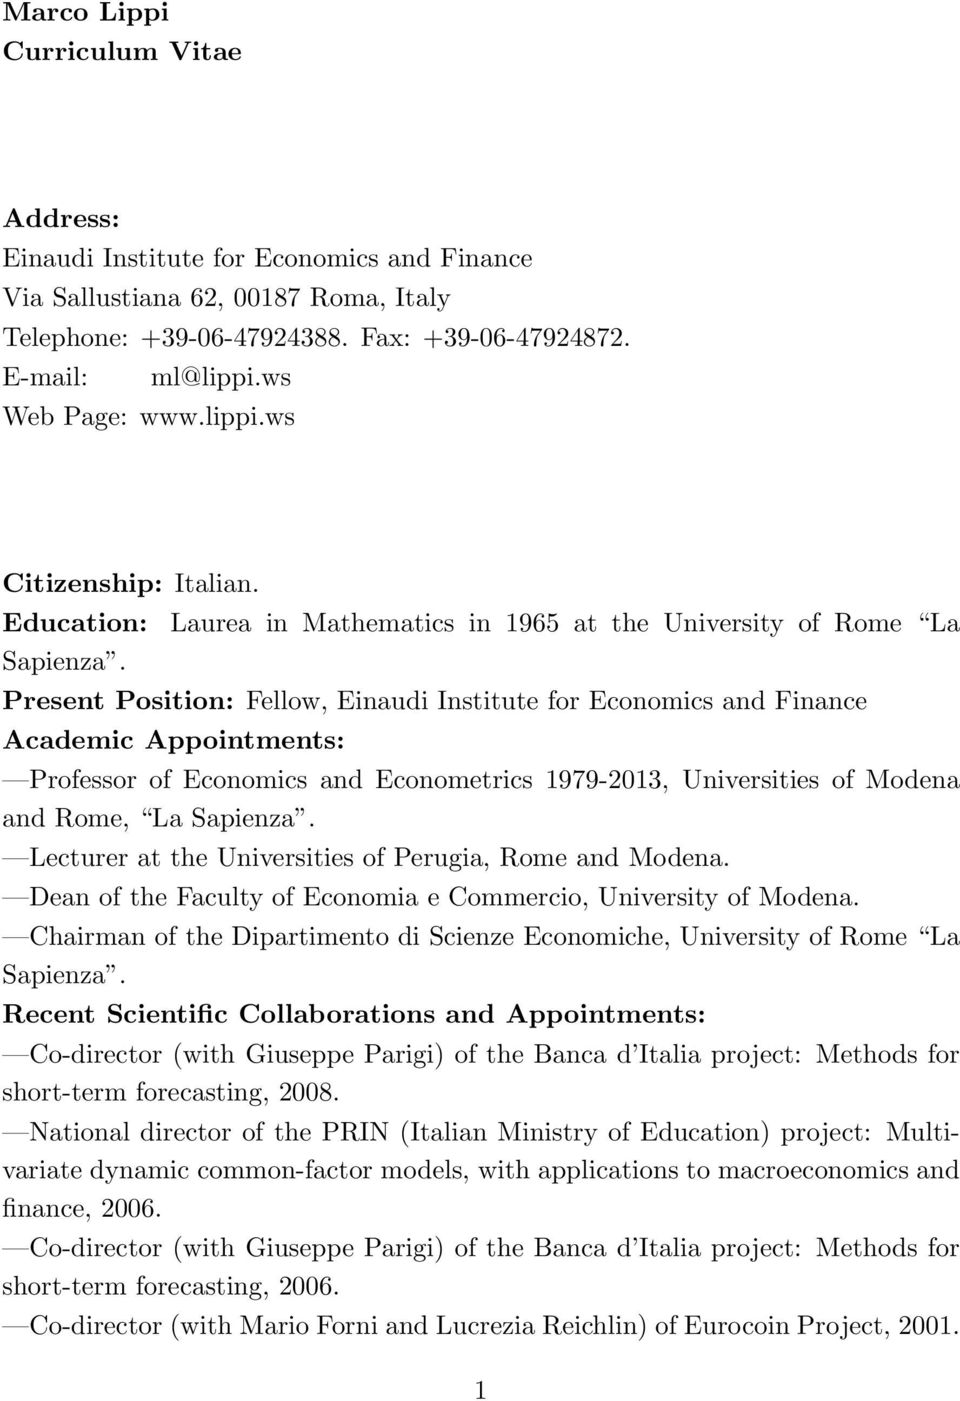 Laurea in Mathematics in 1965 at the University of Rome La Present Position: Fellow, Einaudi Institute for Economics and Finance Academic Appointments: Professor of Economics and Econometrics